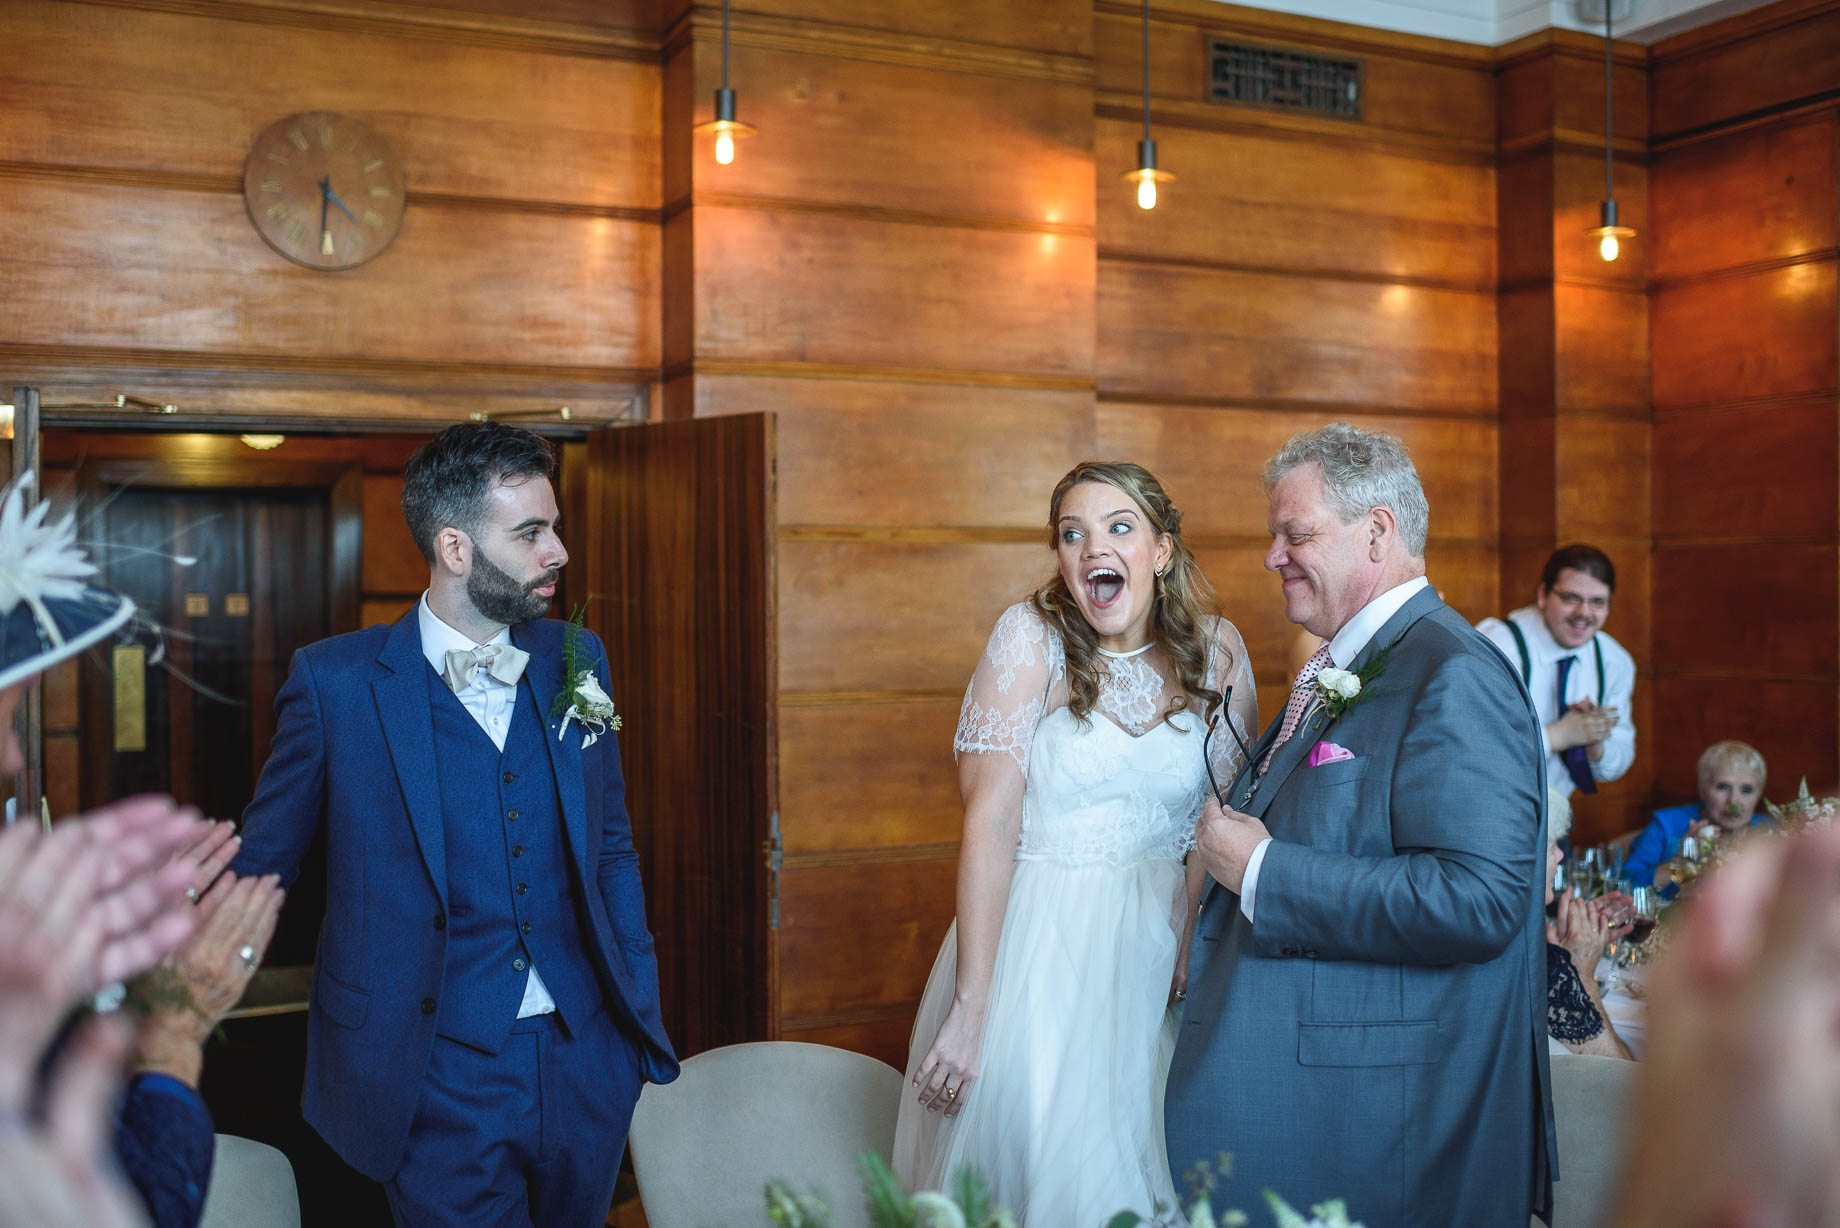 London Wedding Photography - Guy Collier Photography - LJ + Russell (102 of 155)